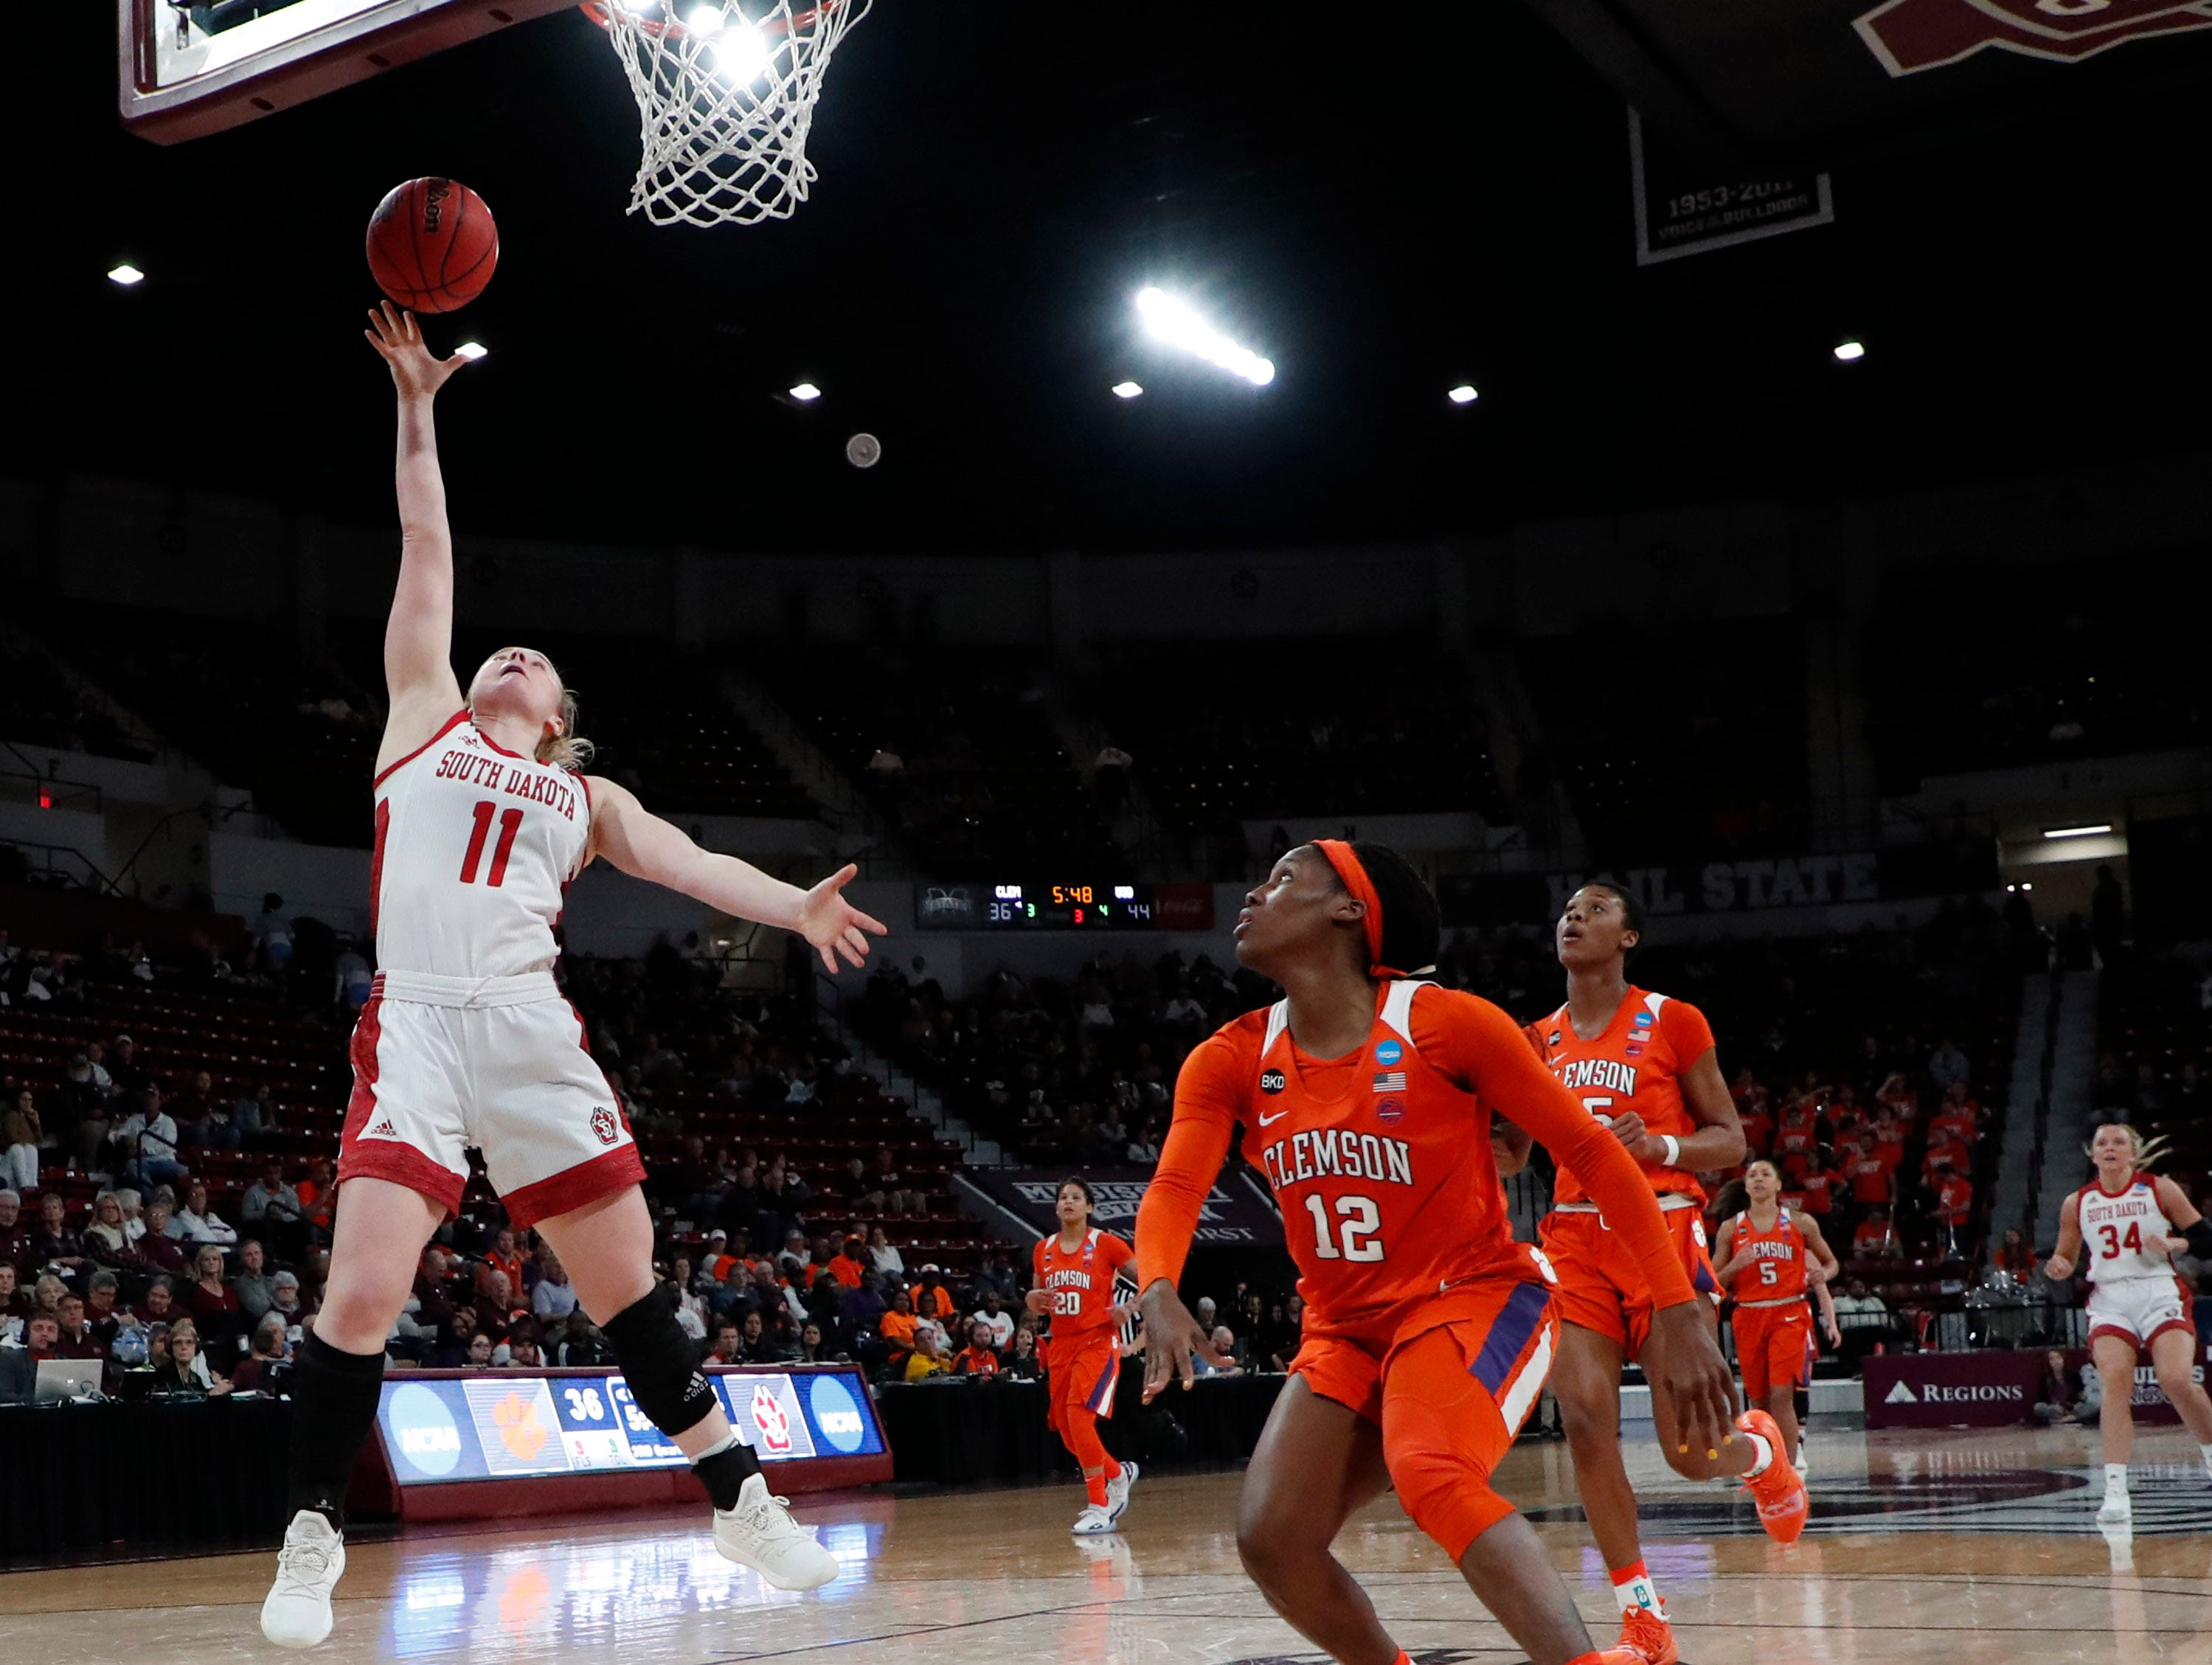 South Dakota guard Monica Arens (11) shoots a layup while Clemson guard Aliyah Collier (12) attempts to defend during the second half of a first round women's college basketball game in the NCAA Tournament in Starkville, Miss., Friday, March 22, 2019. (AP Photo/Rogelio V. Solis)